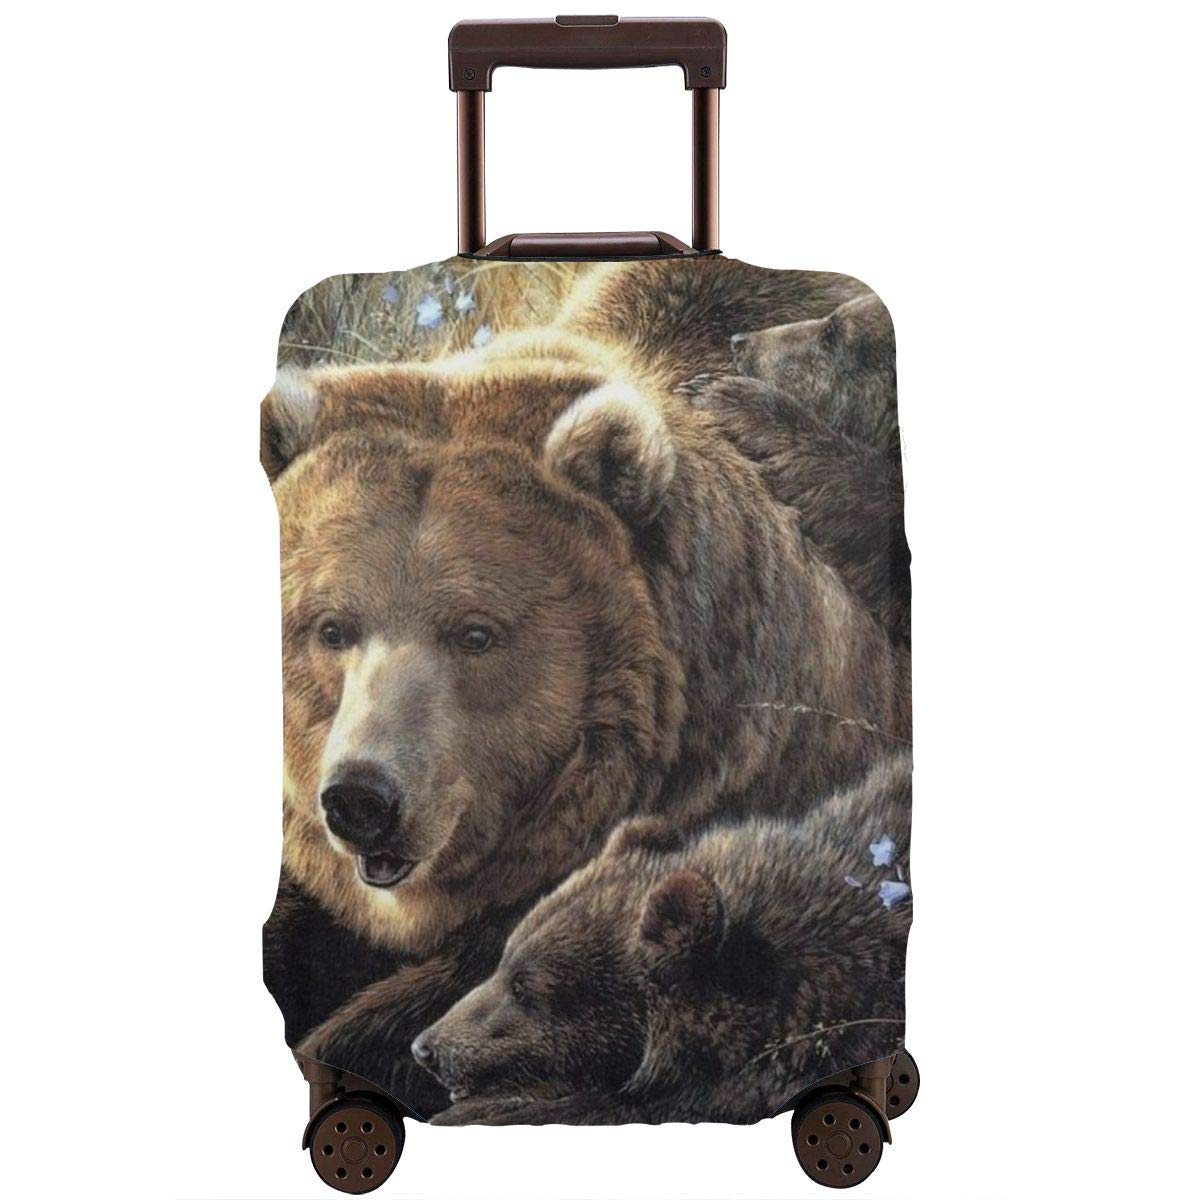 Bear Mom and Three BearBabies Zipper Suitcase Protector Luggage with Fixed Buckle Fits 18-32 Inch Luggage XL Yuotry Travel Luggage Cover